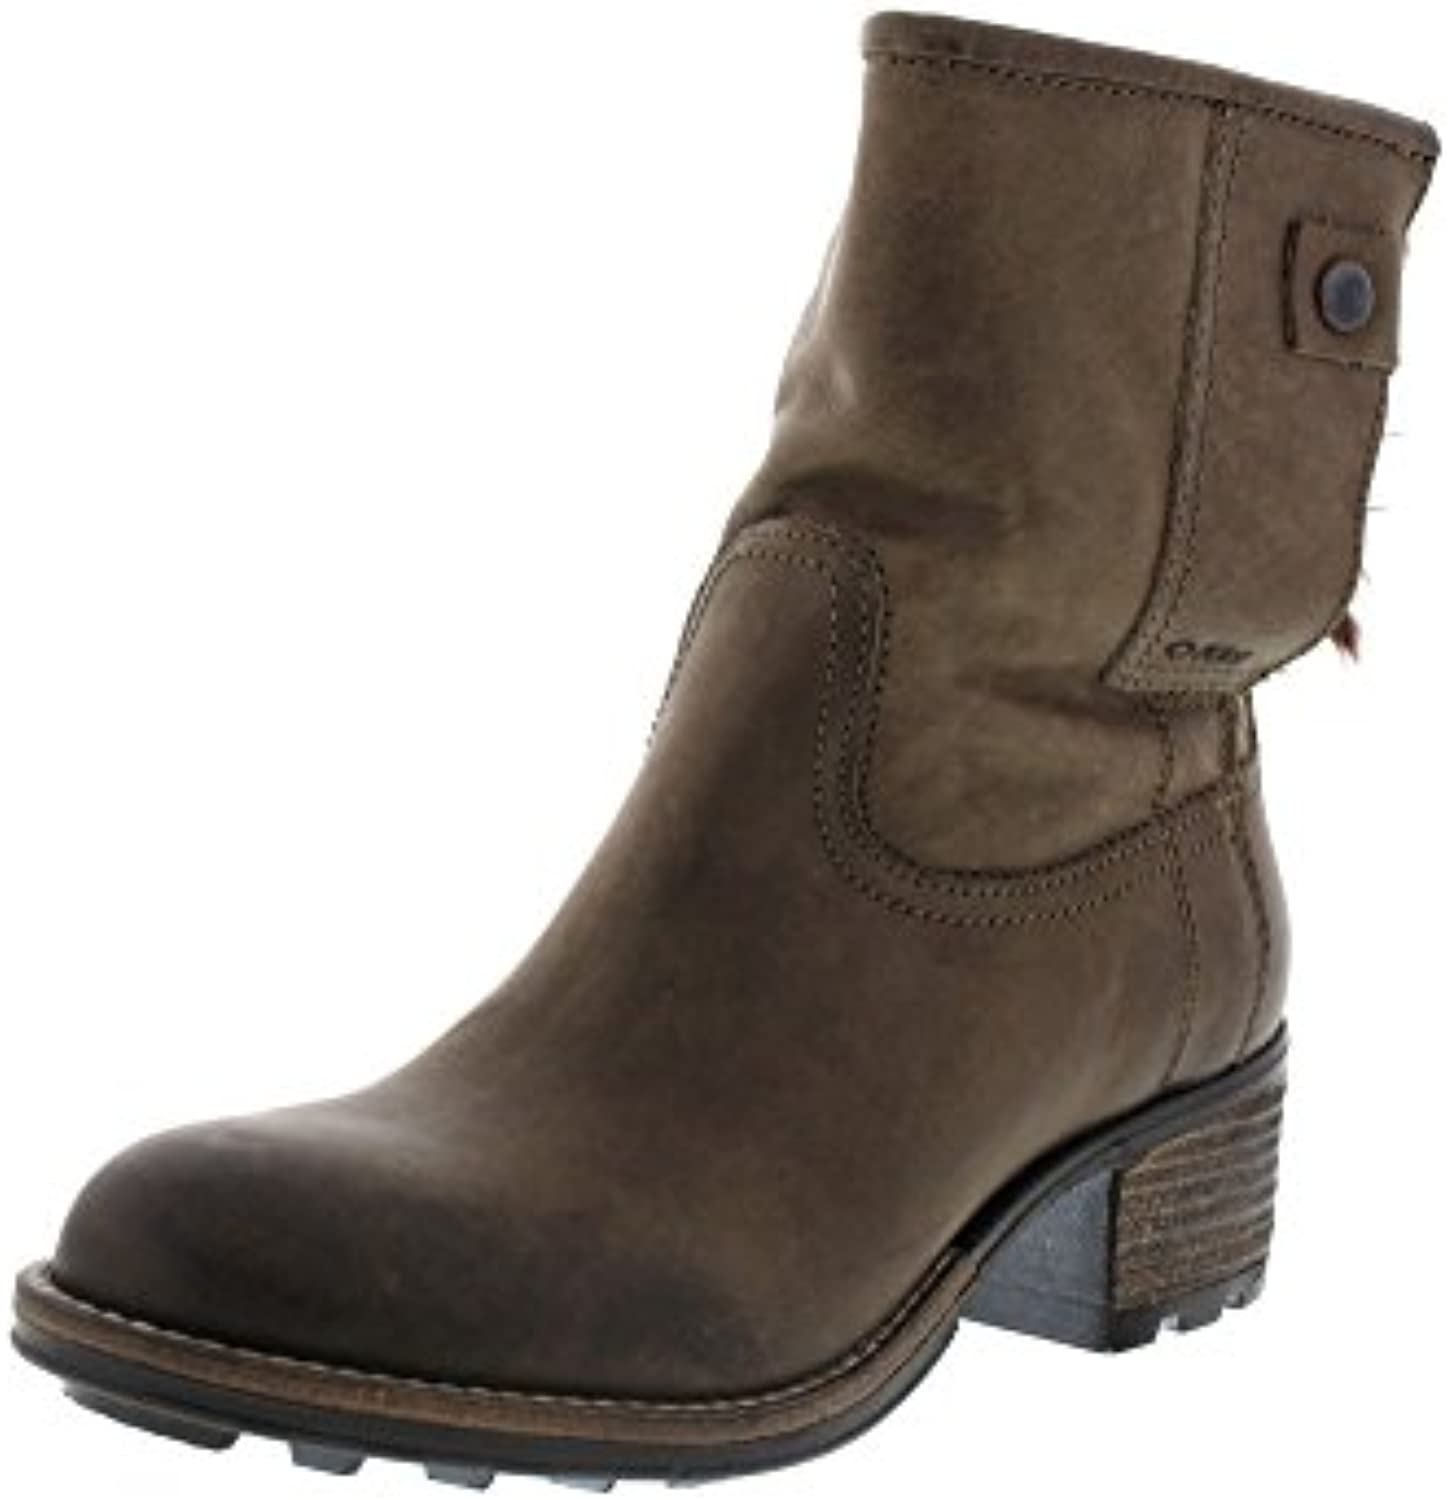 PLDM by Palladium Coventry Cml W - Botas Estilo Motero Mujer